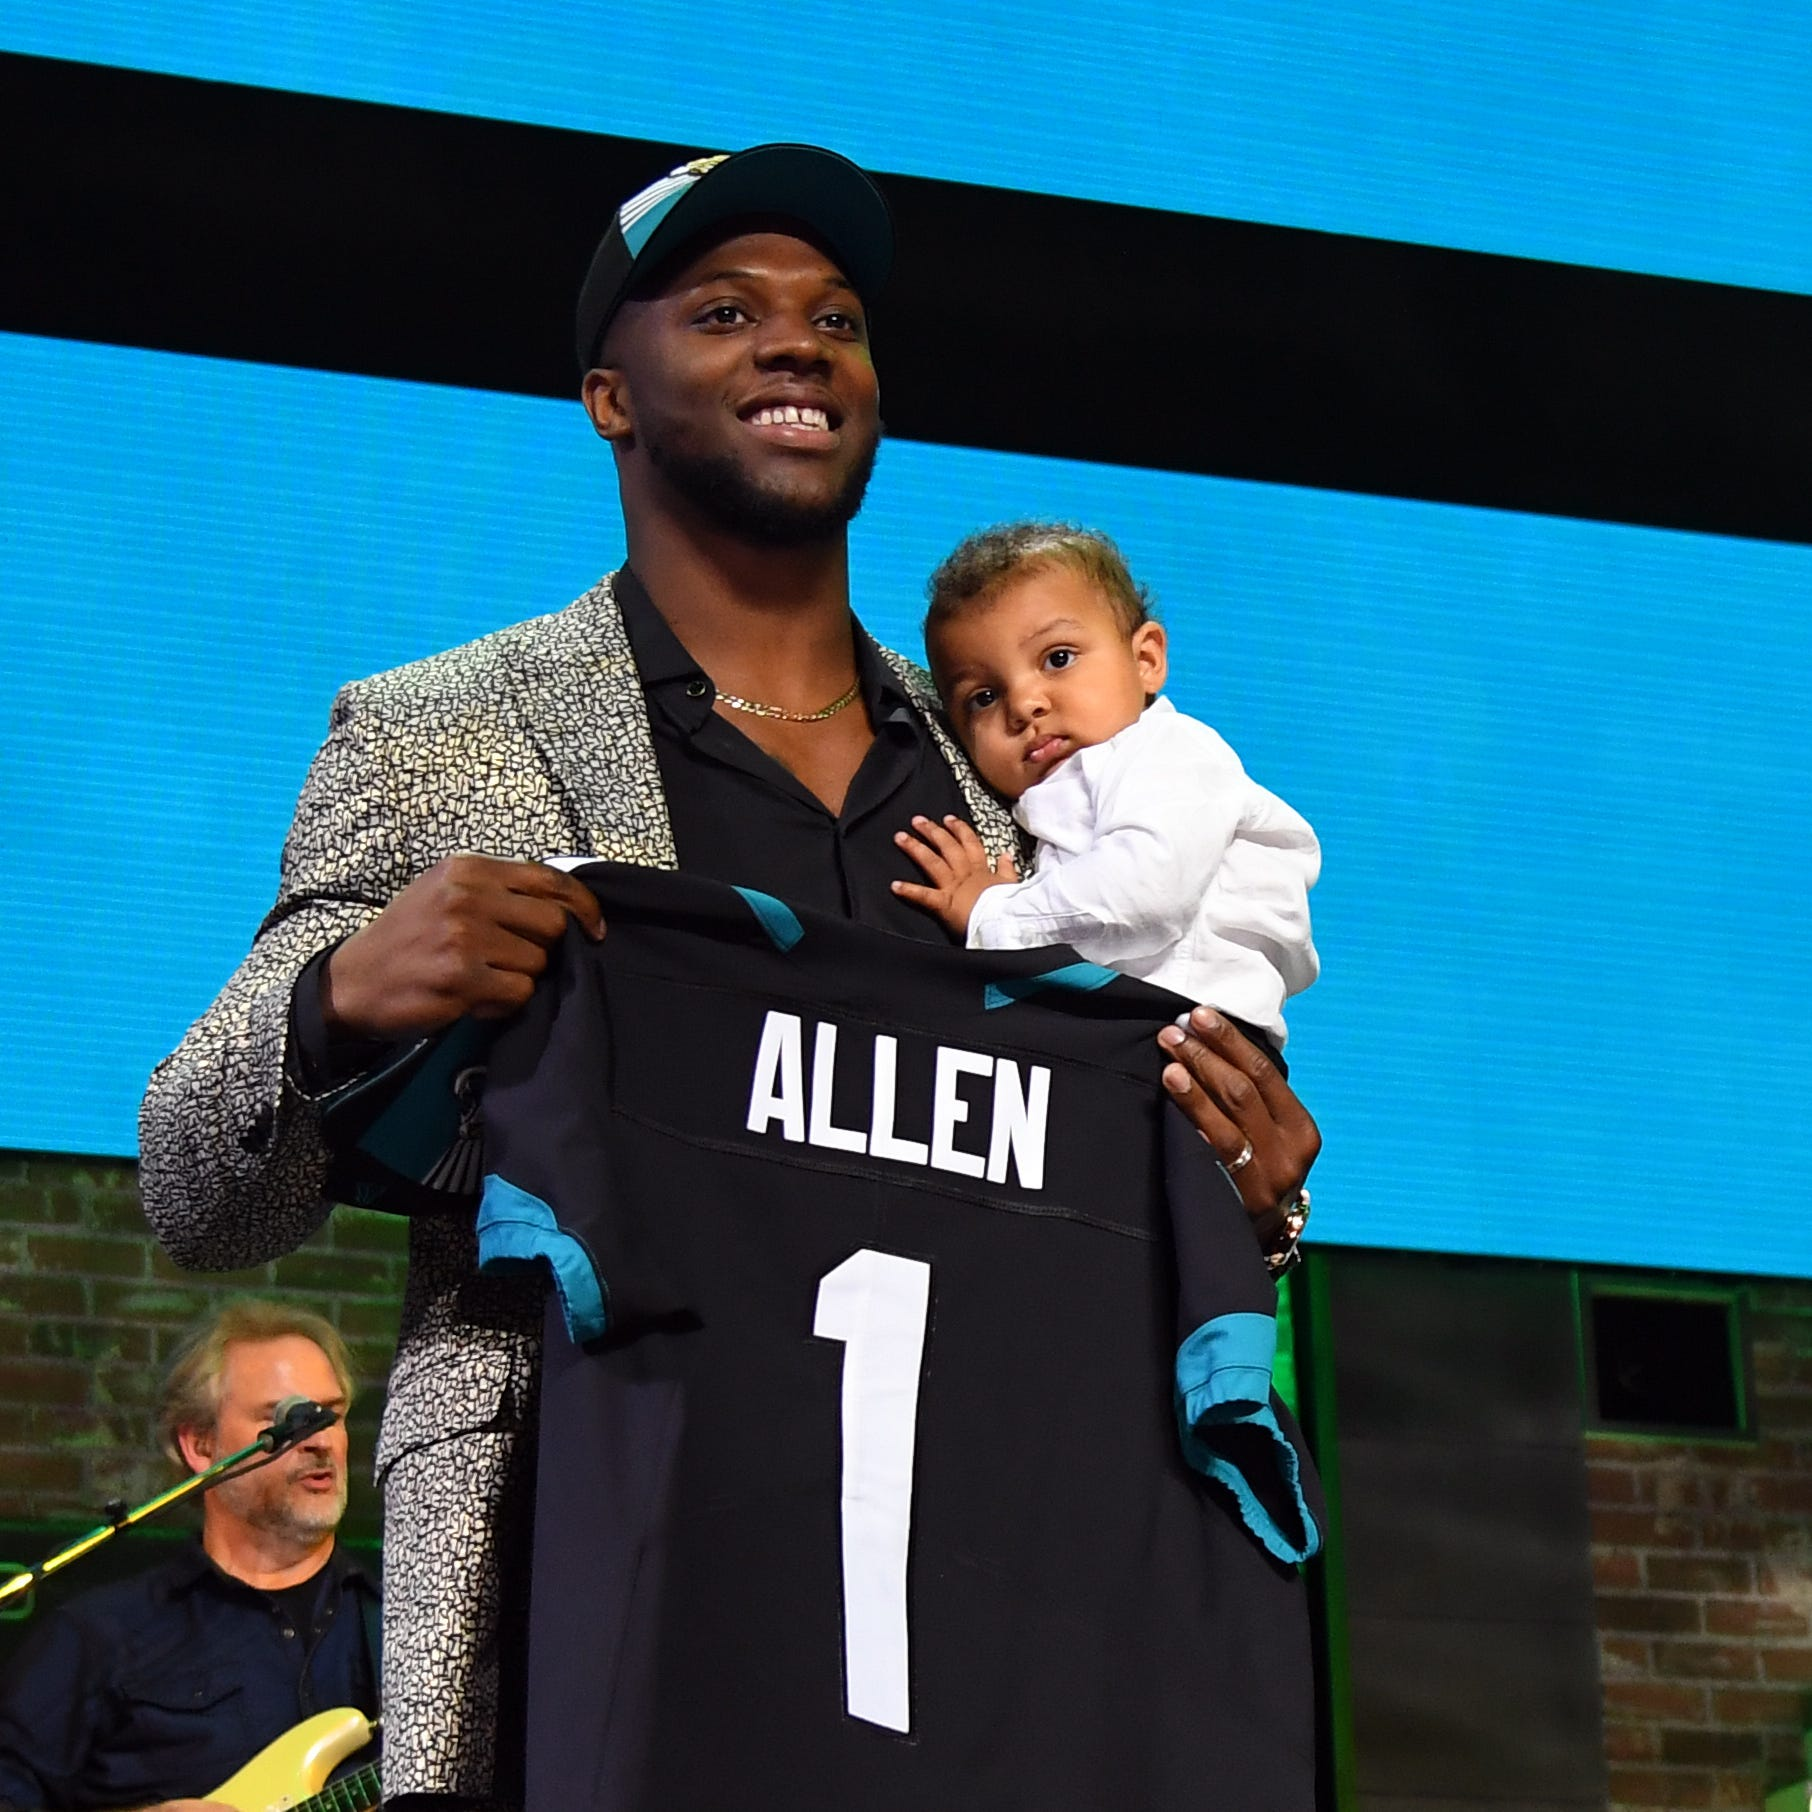 2019 NFL Draft: Jacksonville Jaguars take Josh Allen with 7th overall pick in first round